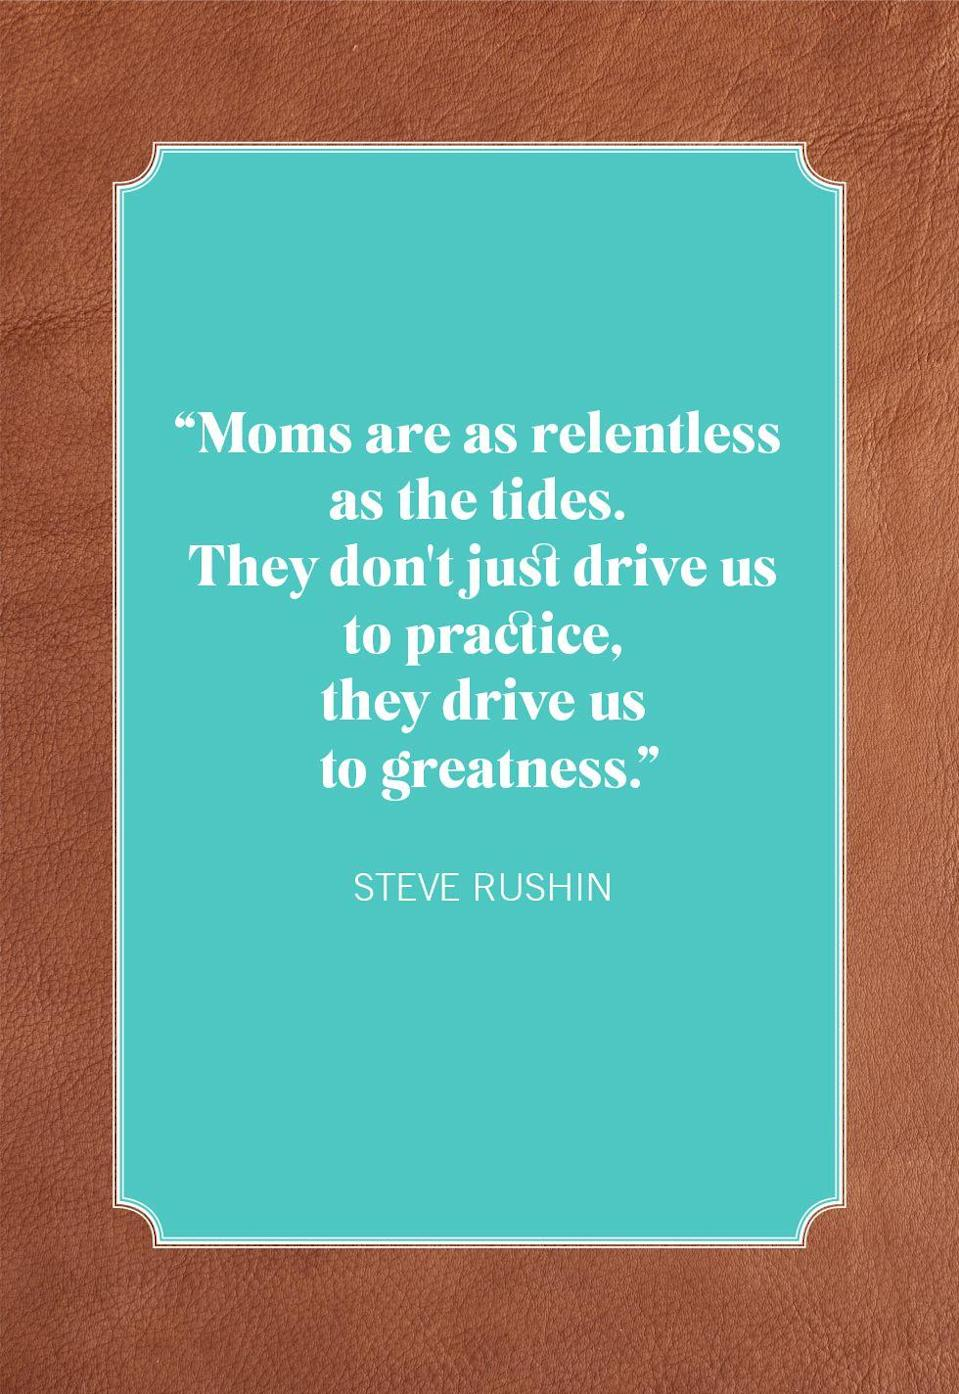 """<p>""""Moms are as relentless as the tides. They don't just drive us to practice, they drive us to greatness.""""</p>"""